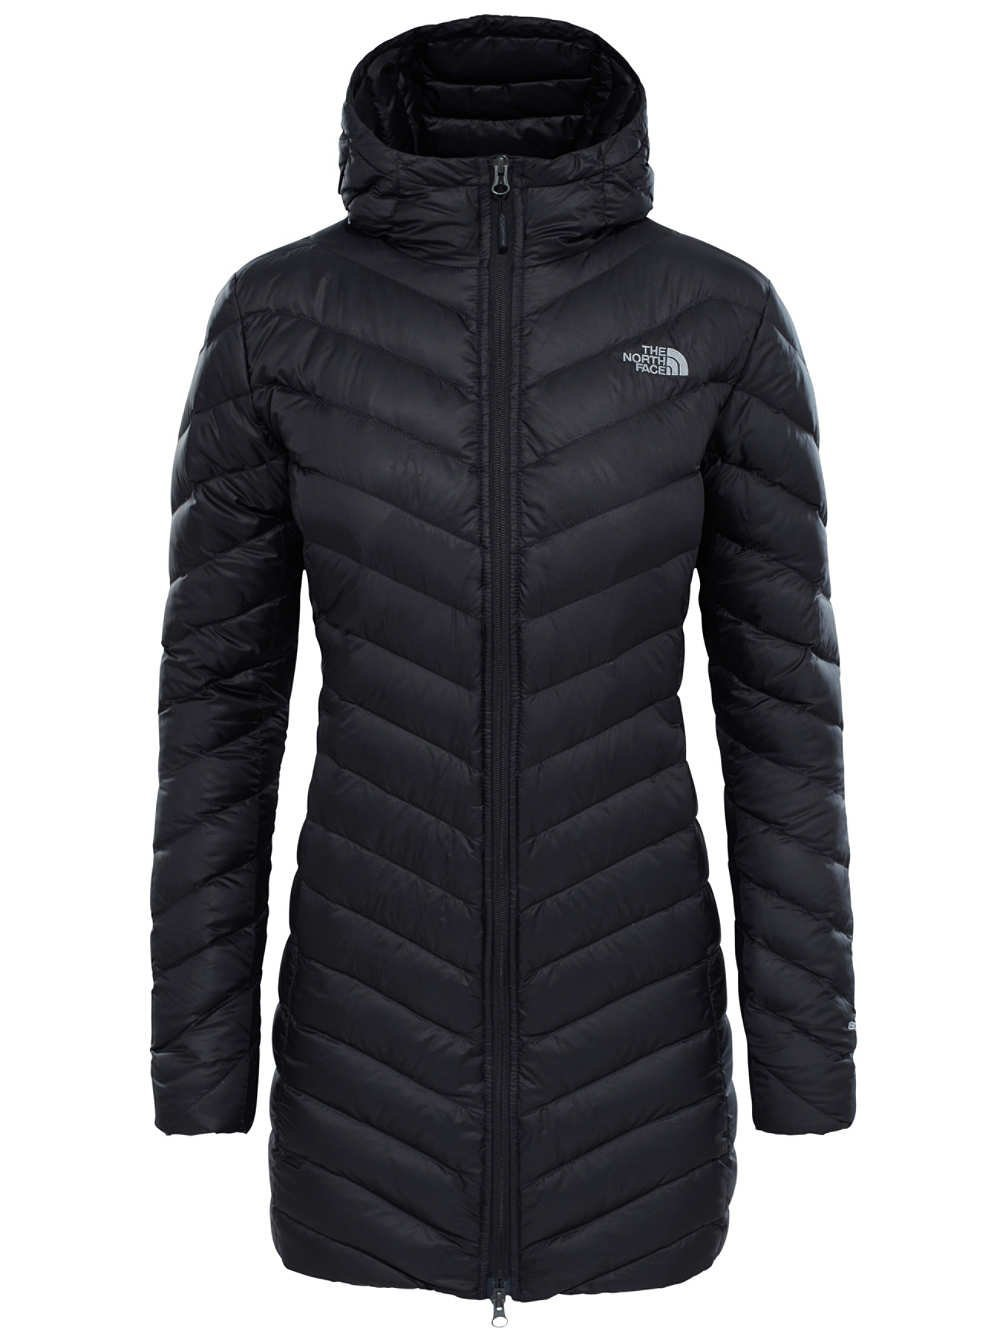 Black quilted North Face parka